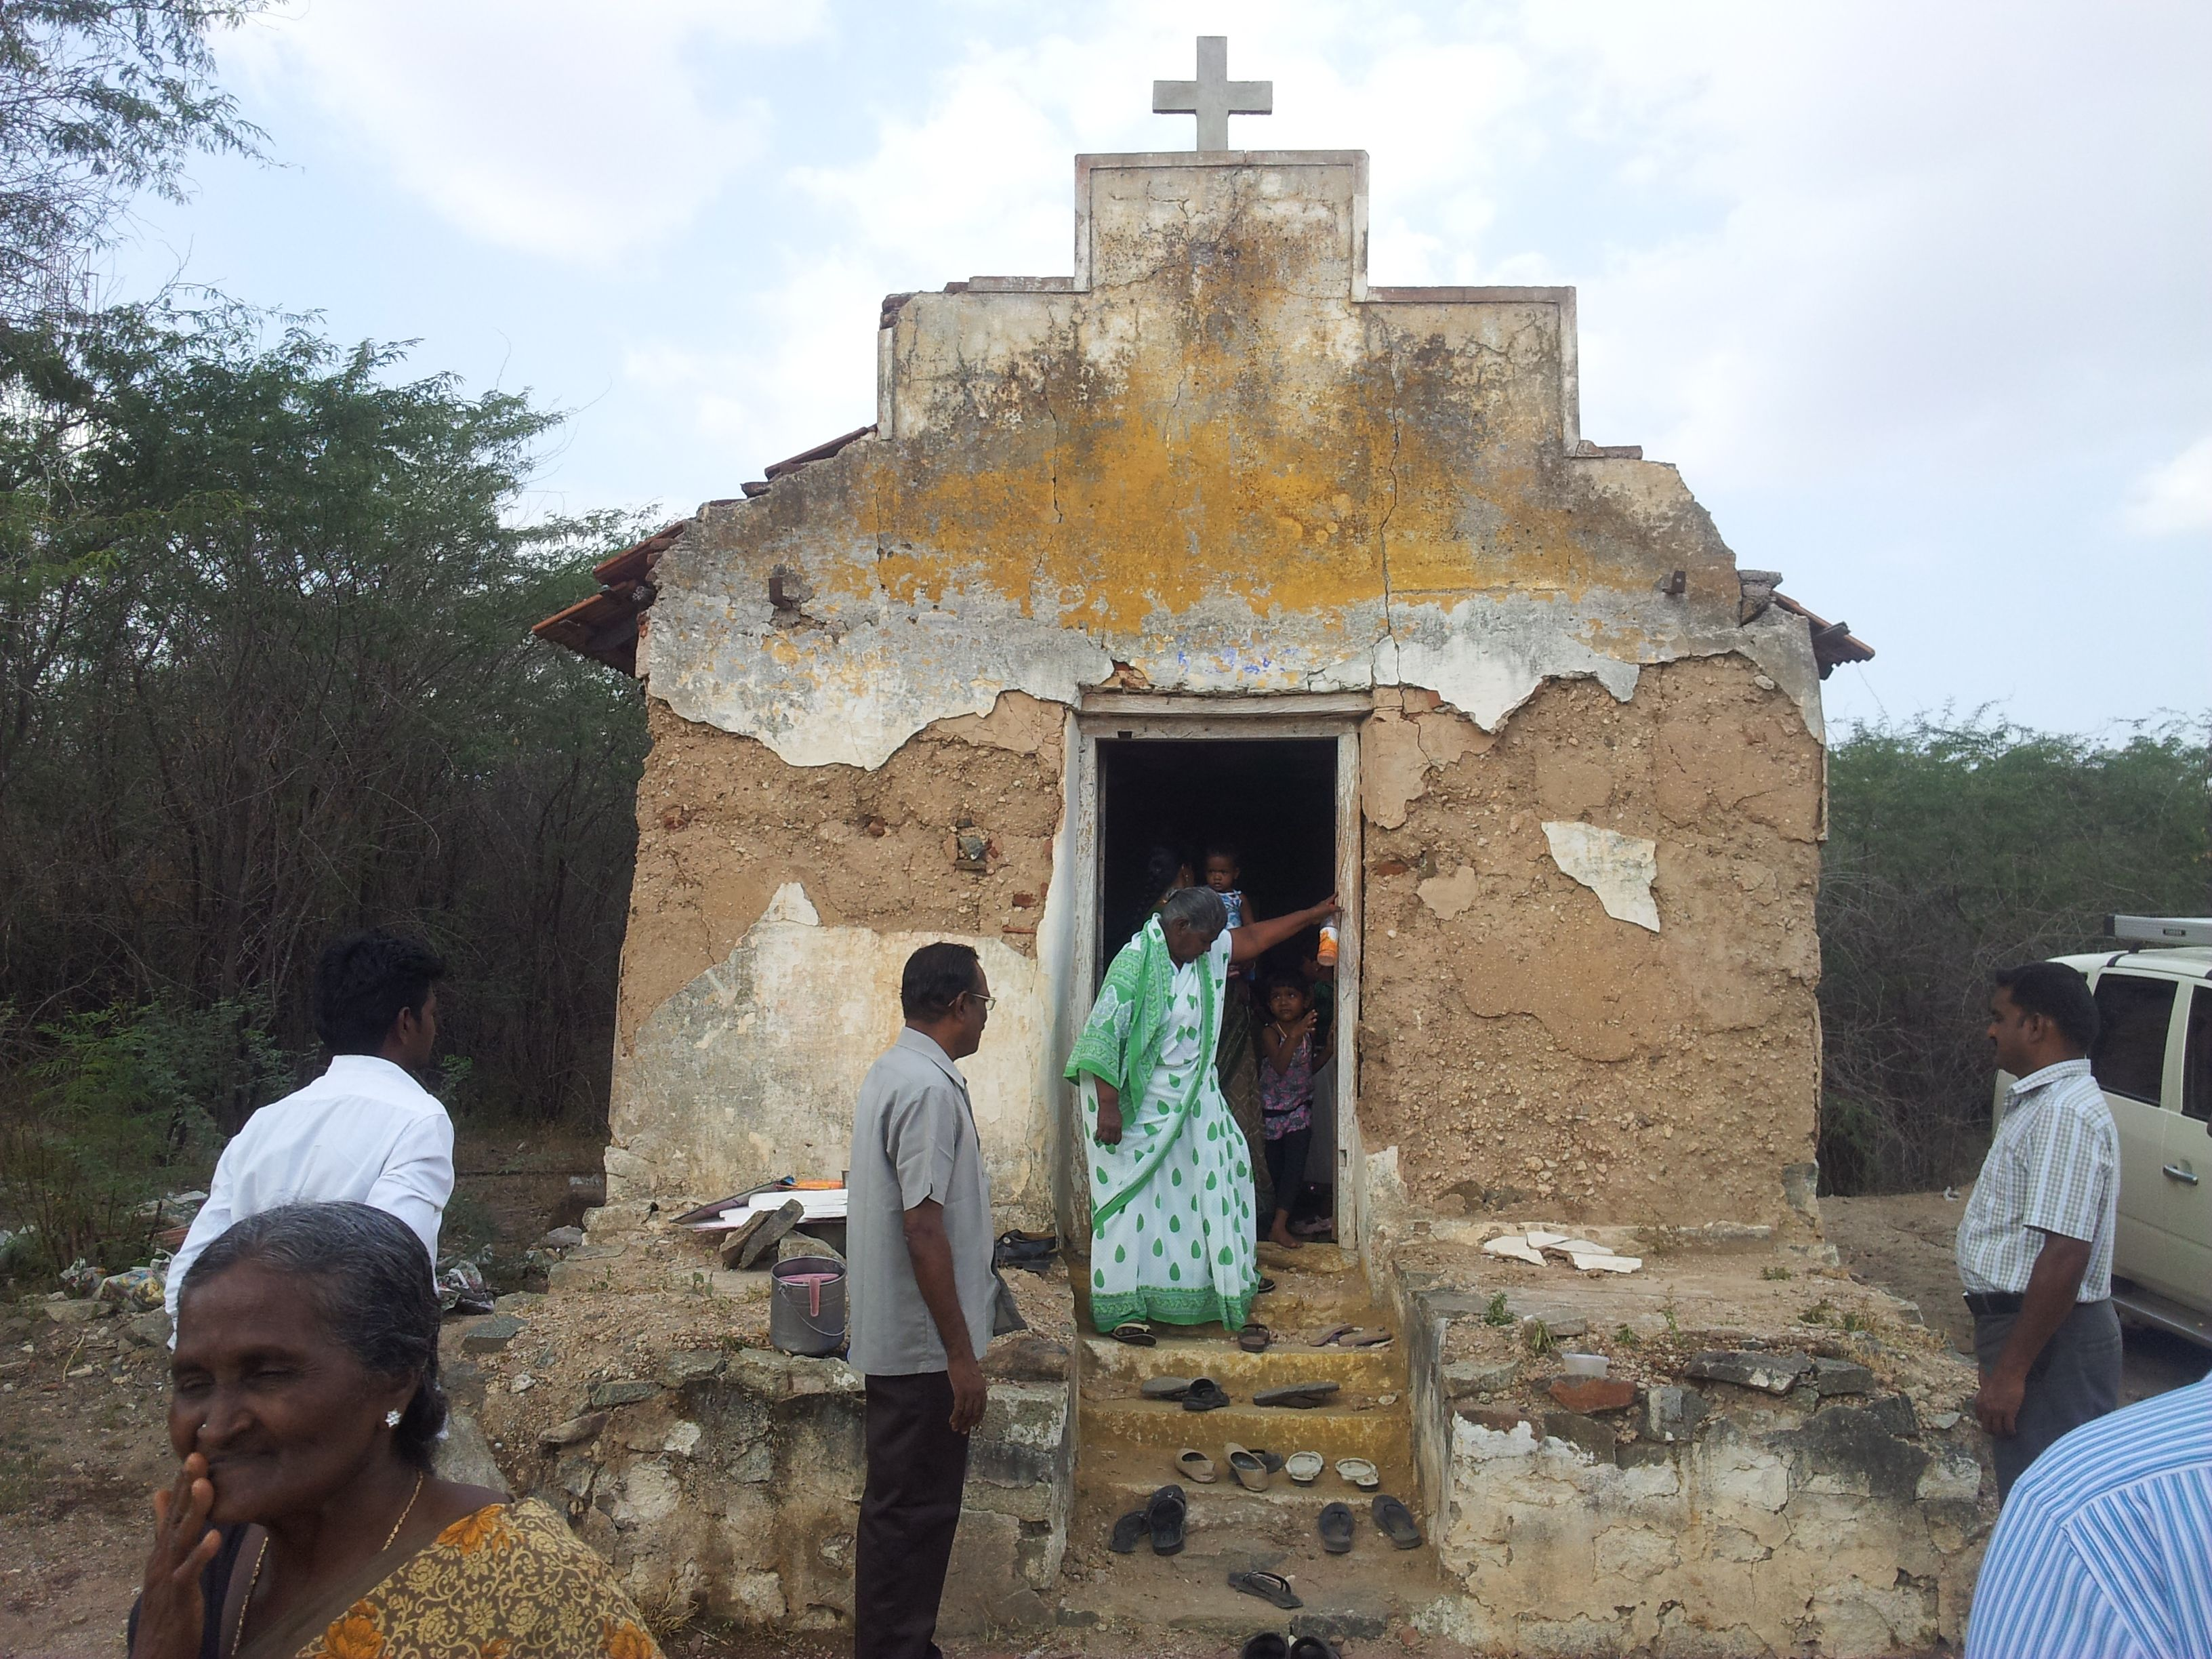 The only remains of the deserted colony is this Church. This is where those who lost their land gather for hope.